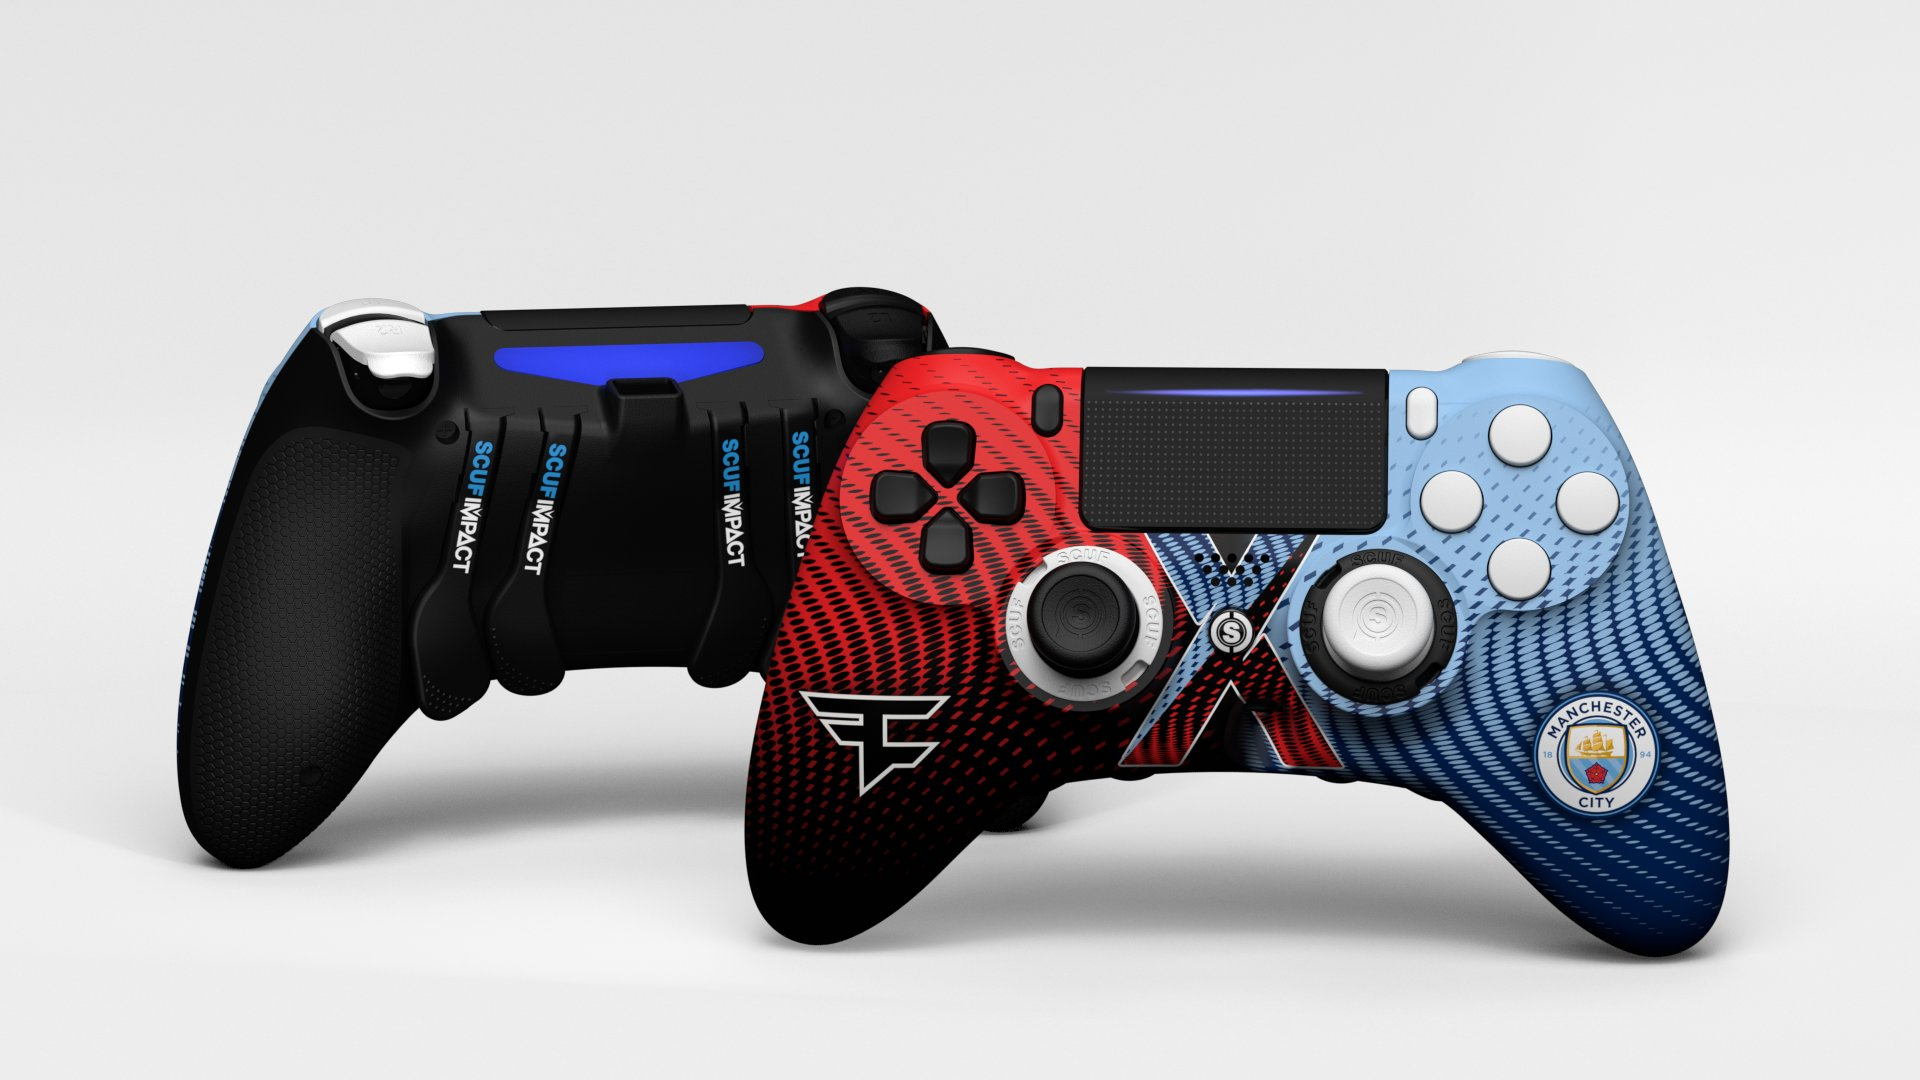 Faze Clan On Twitter Faze Clan X Mancity X Scufgaming Who Wants One